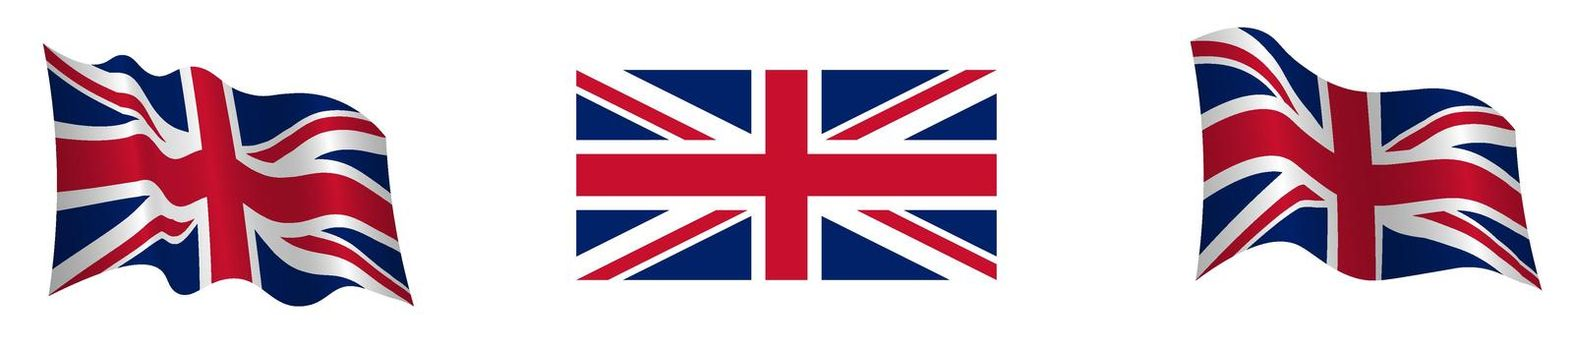 Flag of the United Kingdom of Great Britain and Northern Ireland in a static position and in motion, developing in the wind, on a transparent background